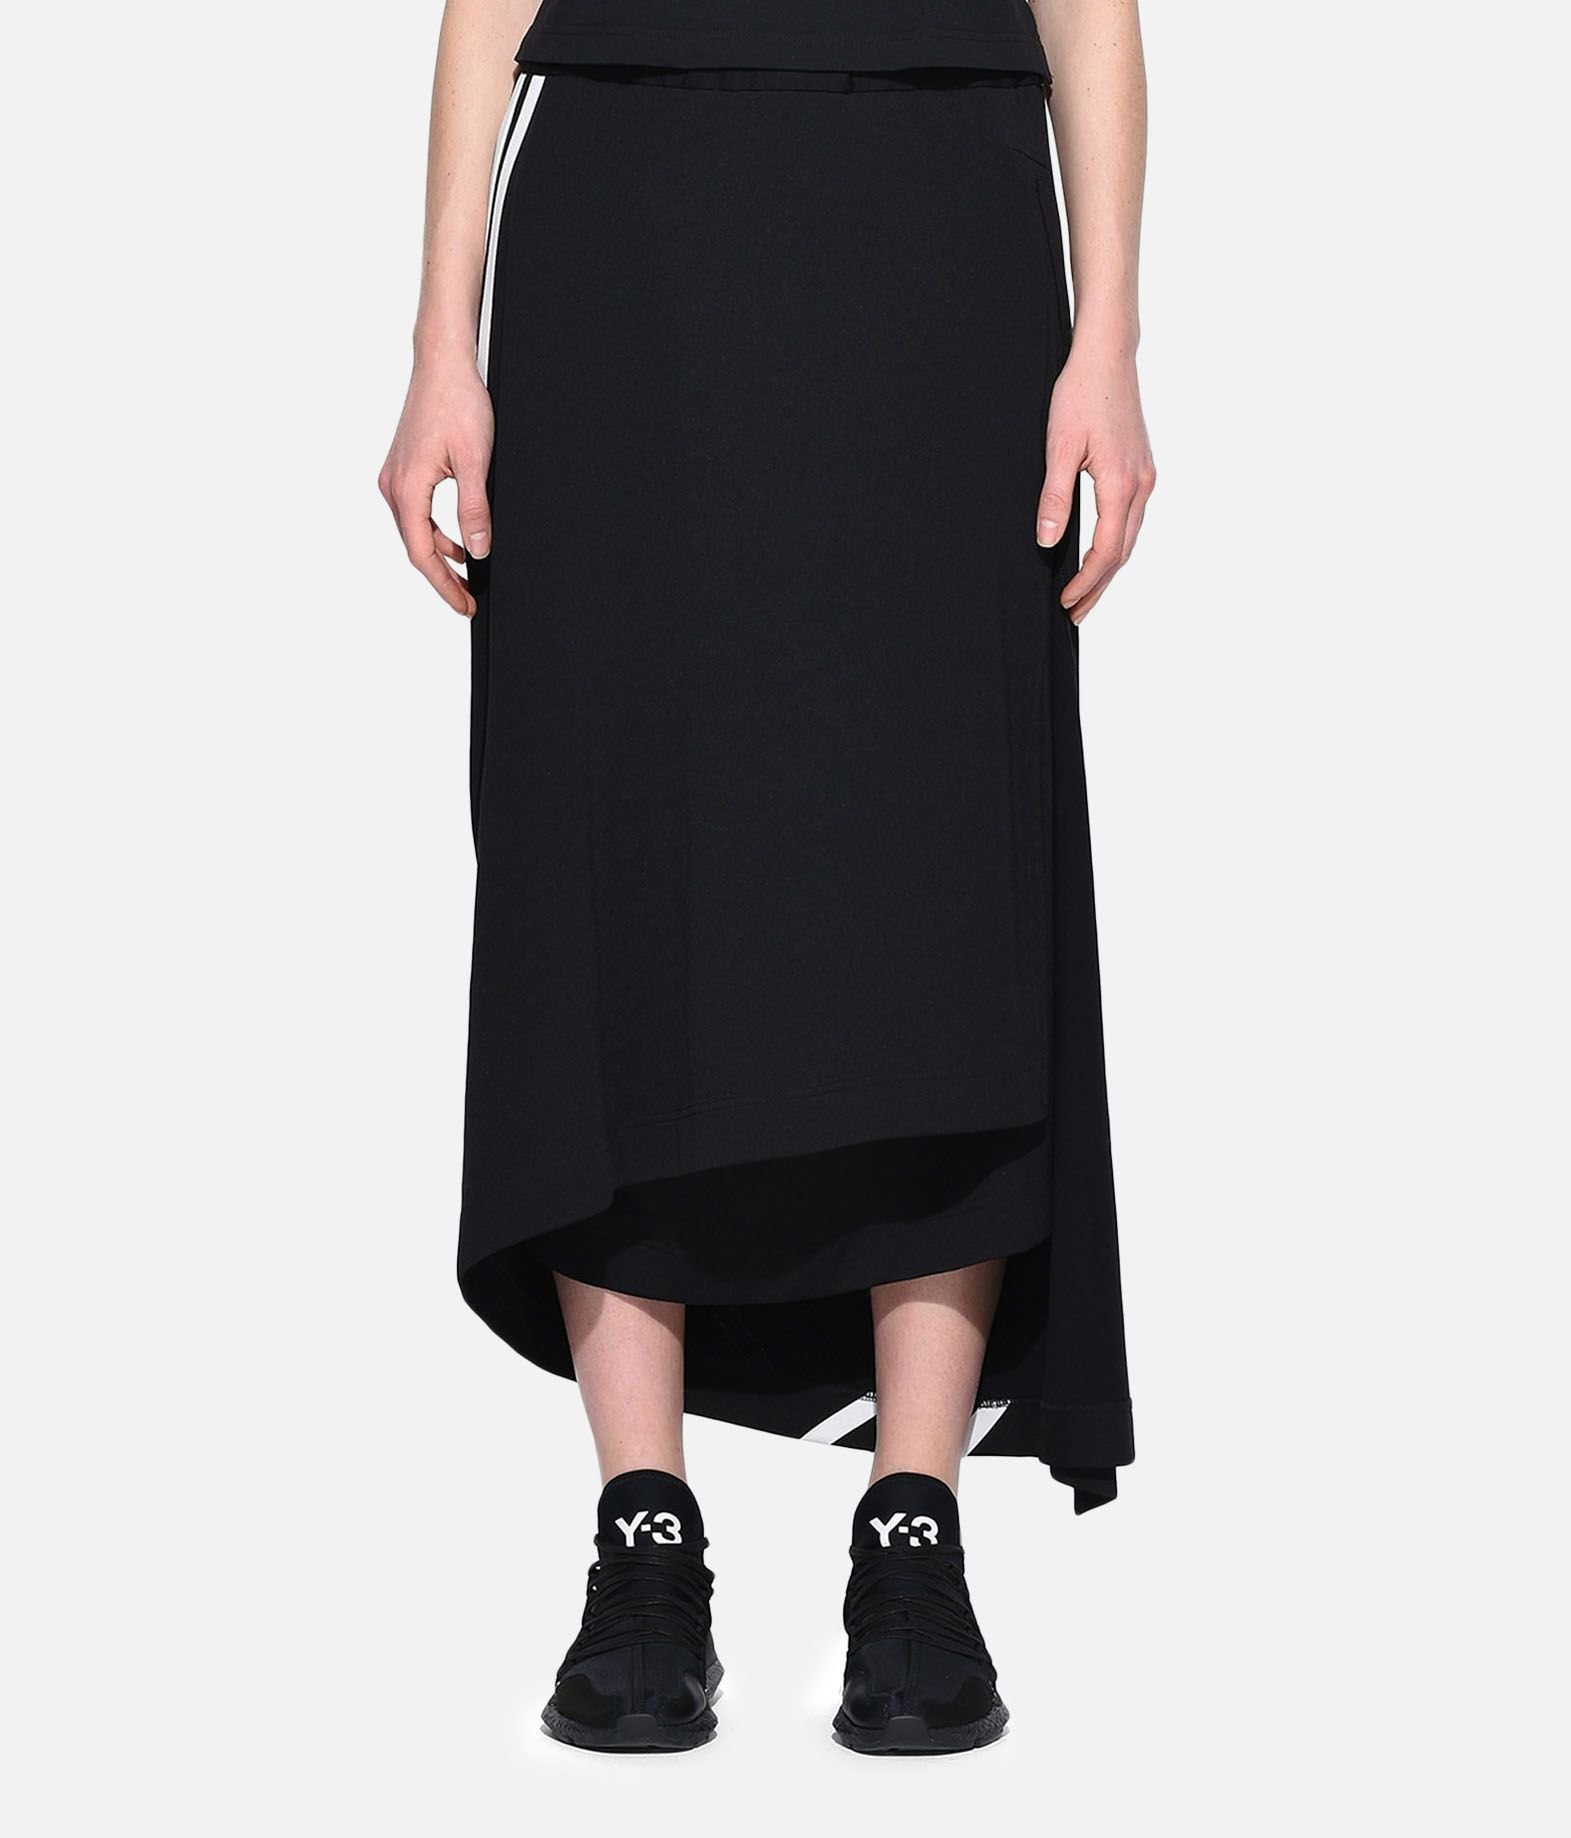 Y-3 Y-3 3-Stripes Drape Skirt Knee length skirt Woman r